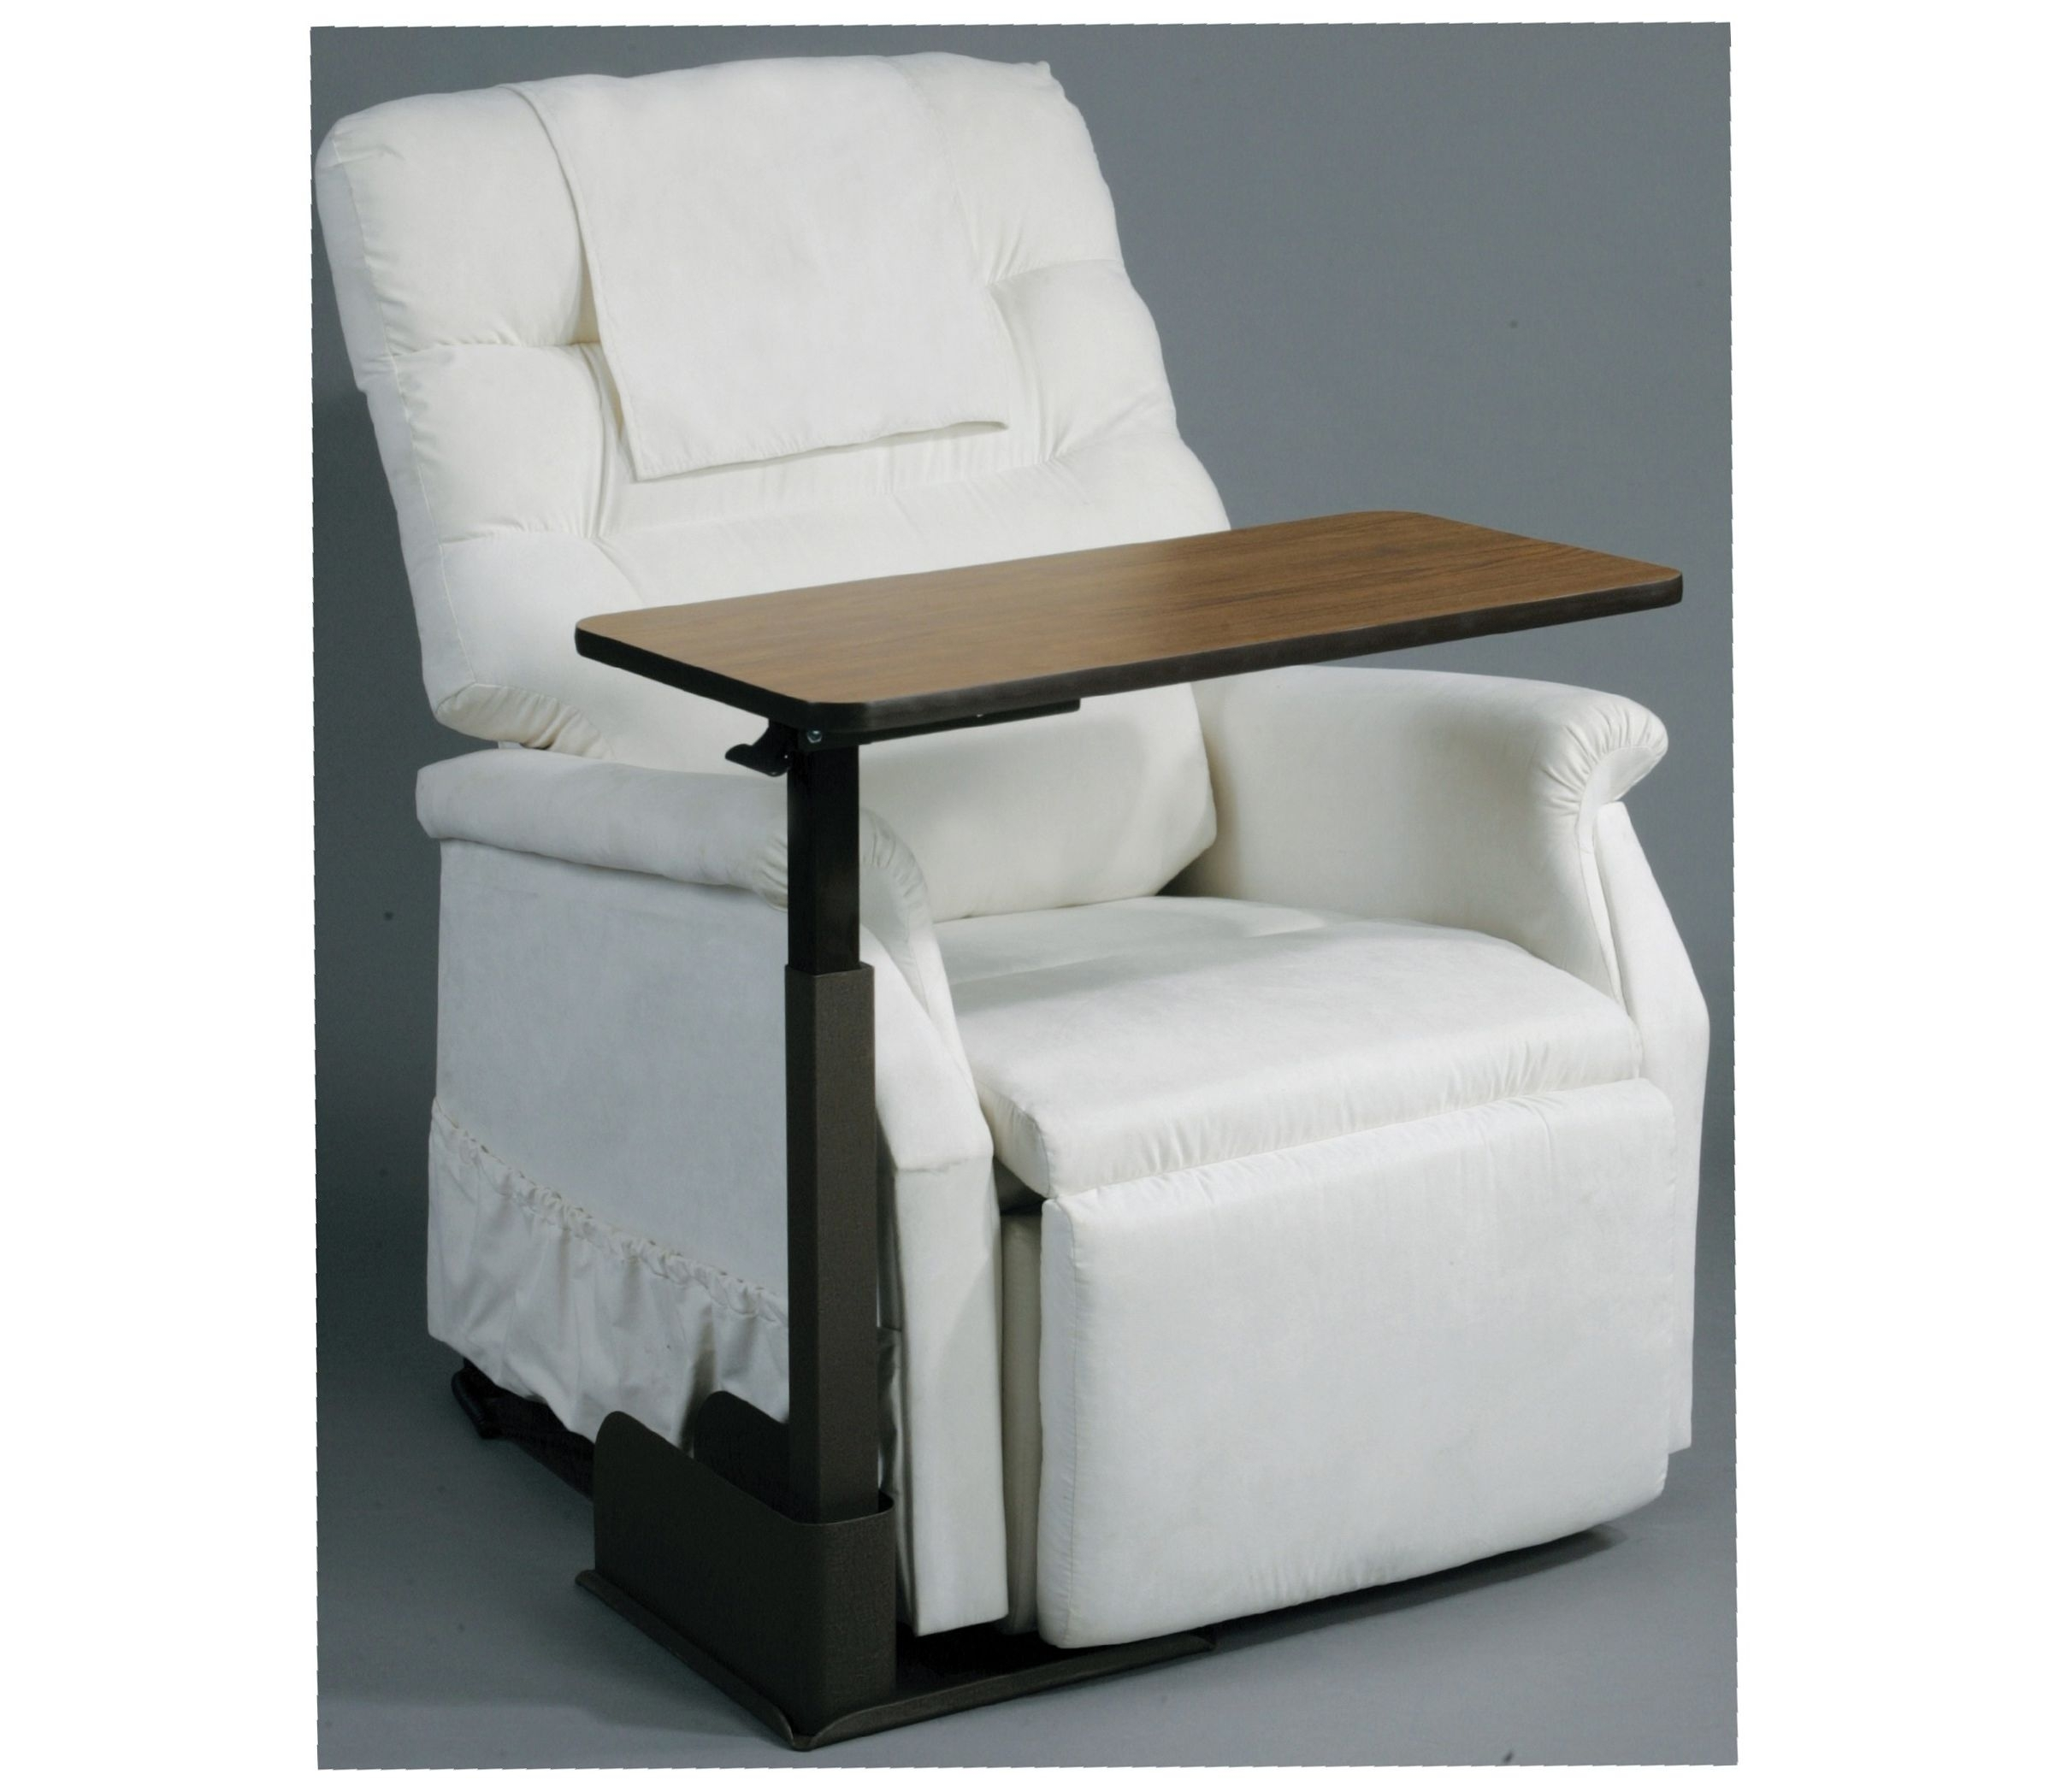 Picture of: Adjustable Height Side Table Ideas On Foter